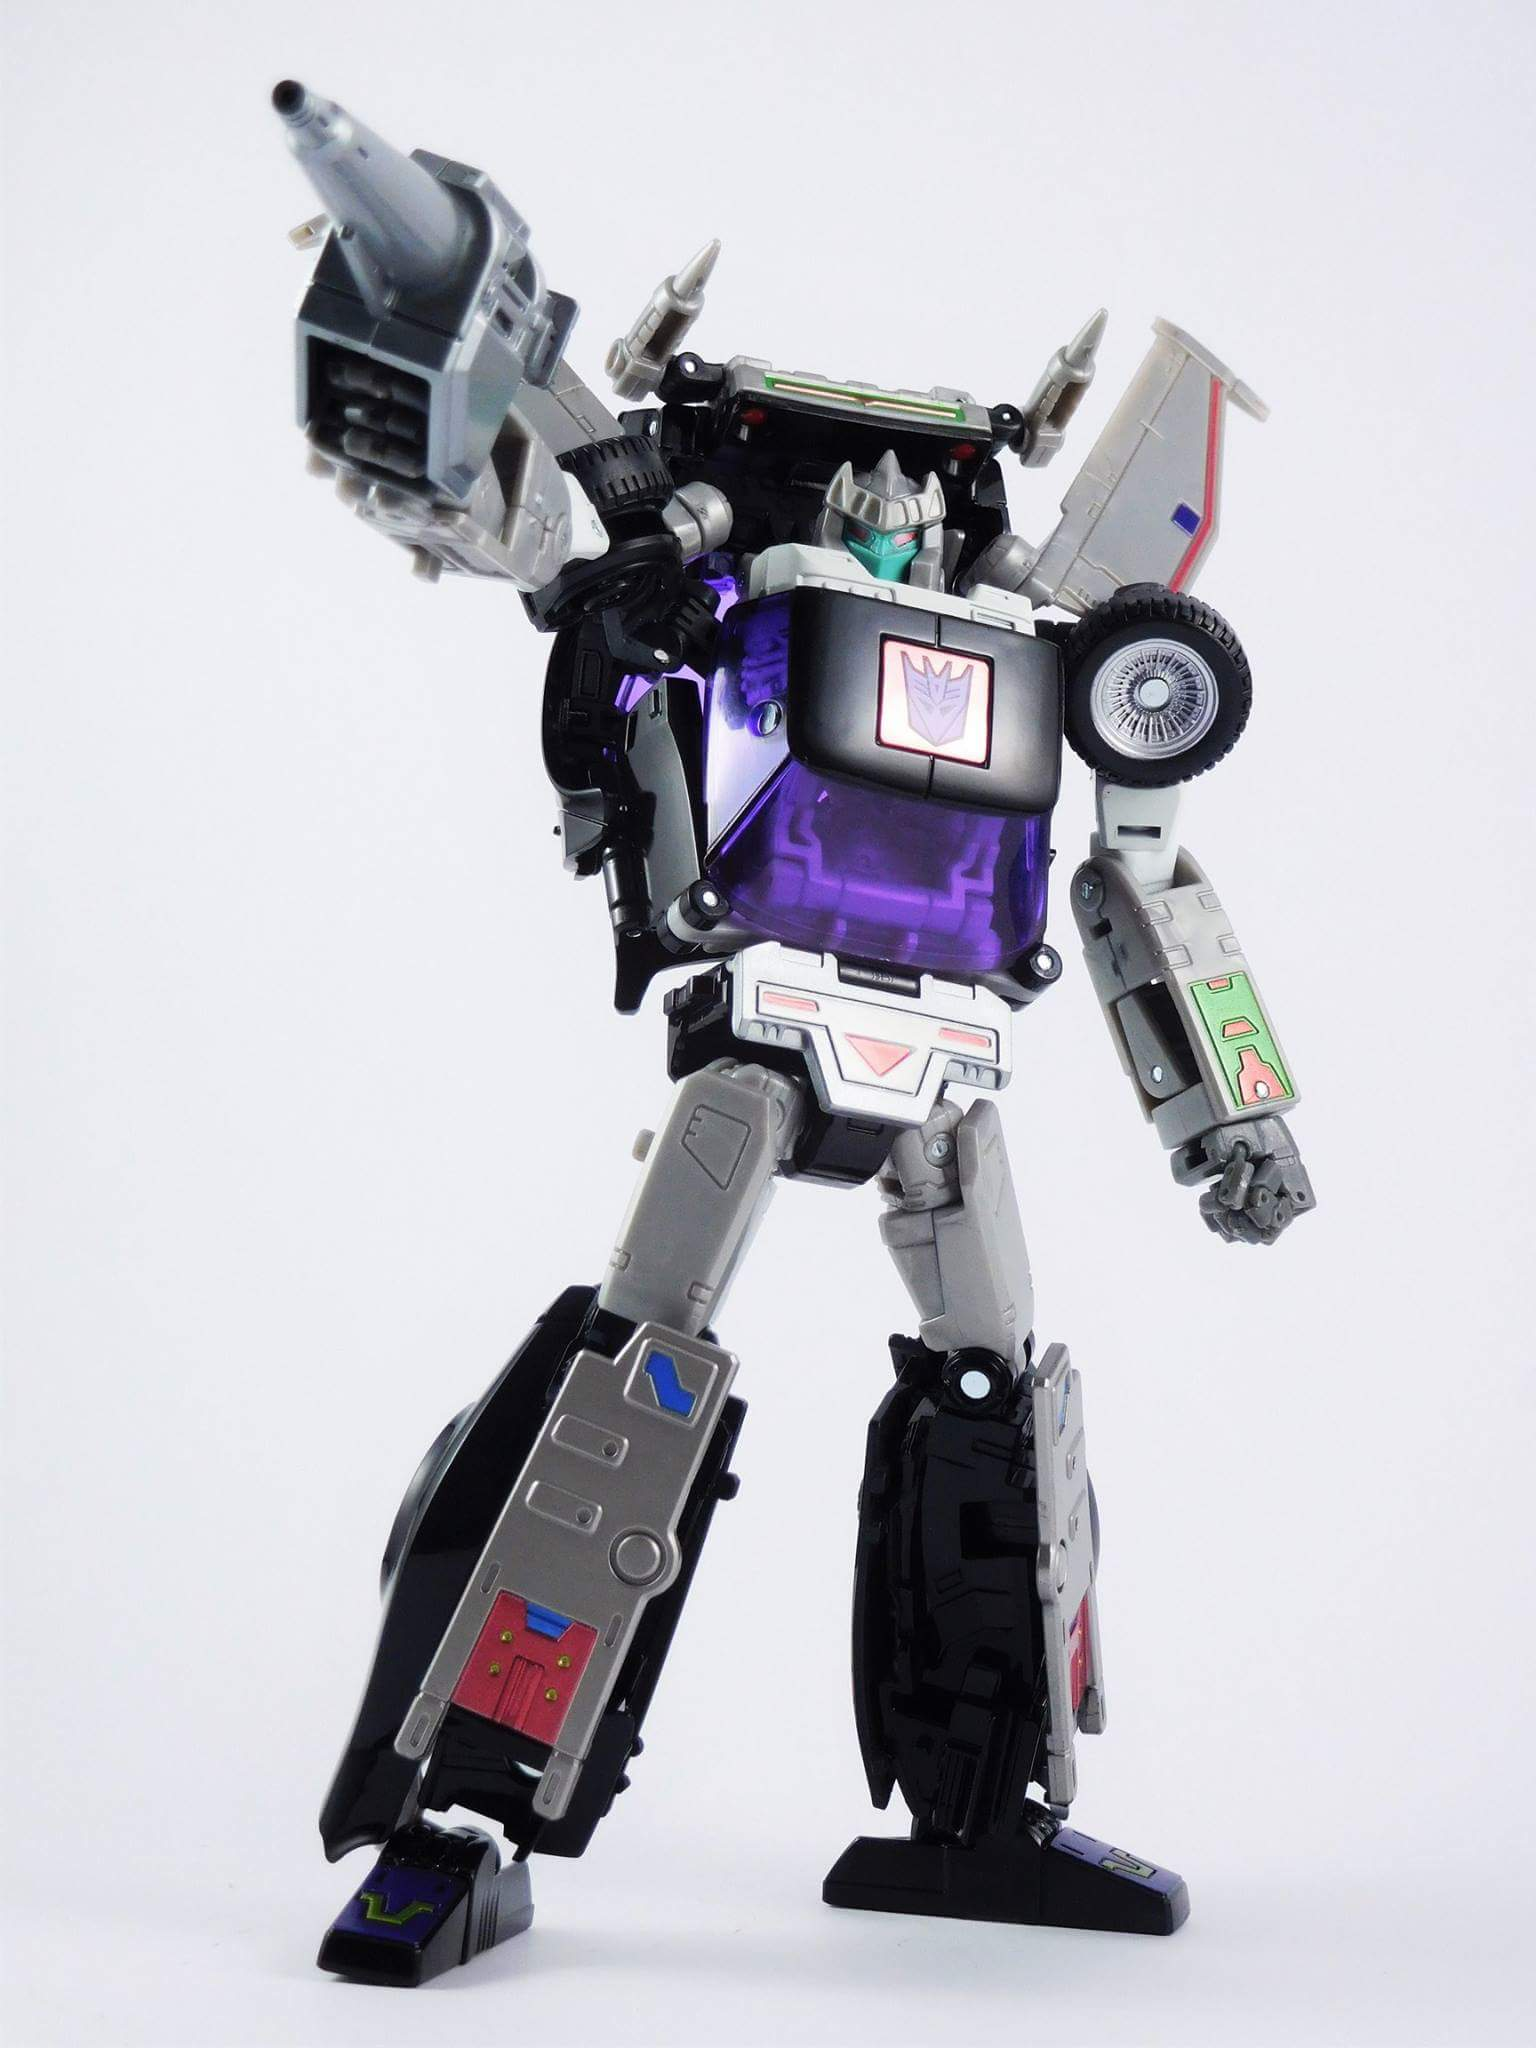 [Masterpiece] MP-25L LoudPedal (Rouge) + MP-26 Road Rage (Noir) ― aka Tracks/Le Sillage Diaclone - Page 3 NycV9PhA